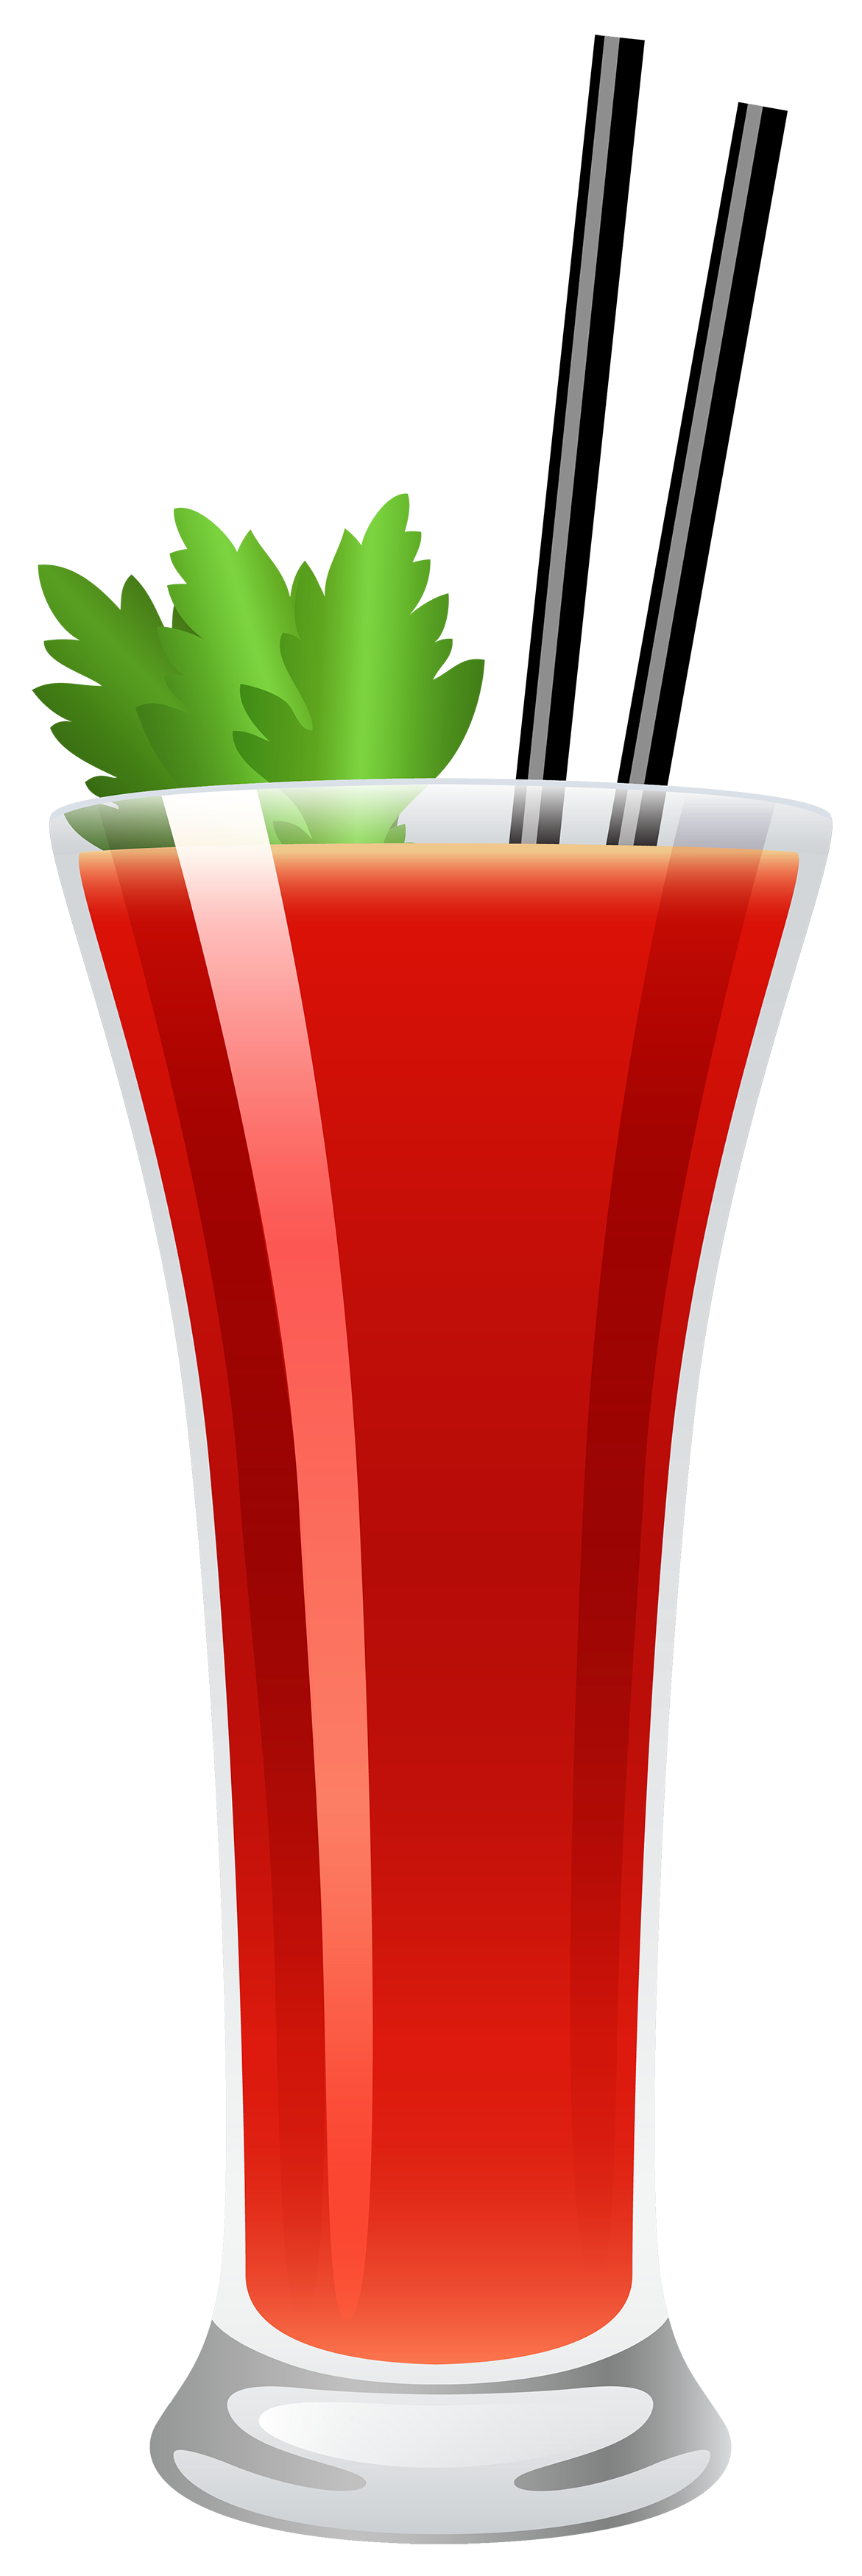 Bloody mary clipart transparent library Cocktail Bloody Mary PNG Clipart - Best WEB Clipart transparent library